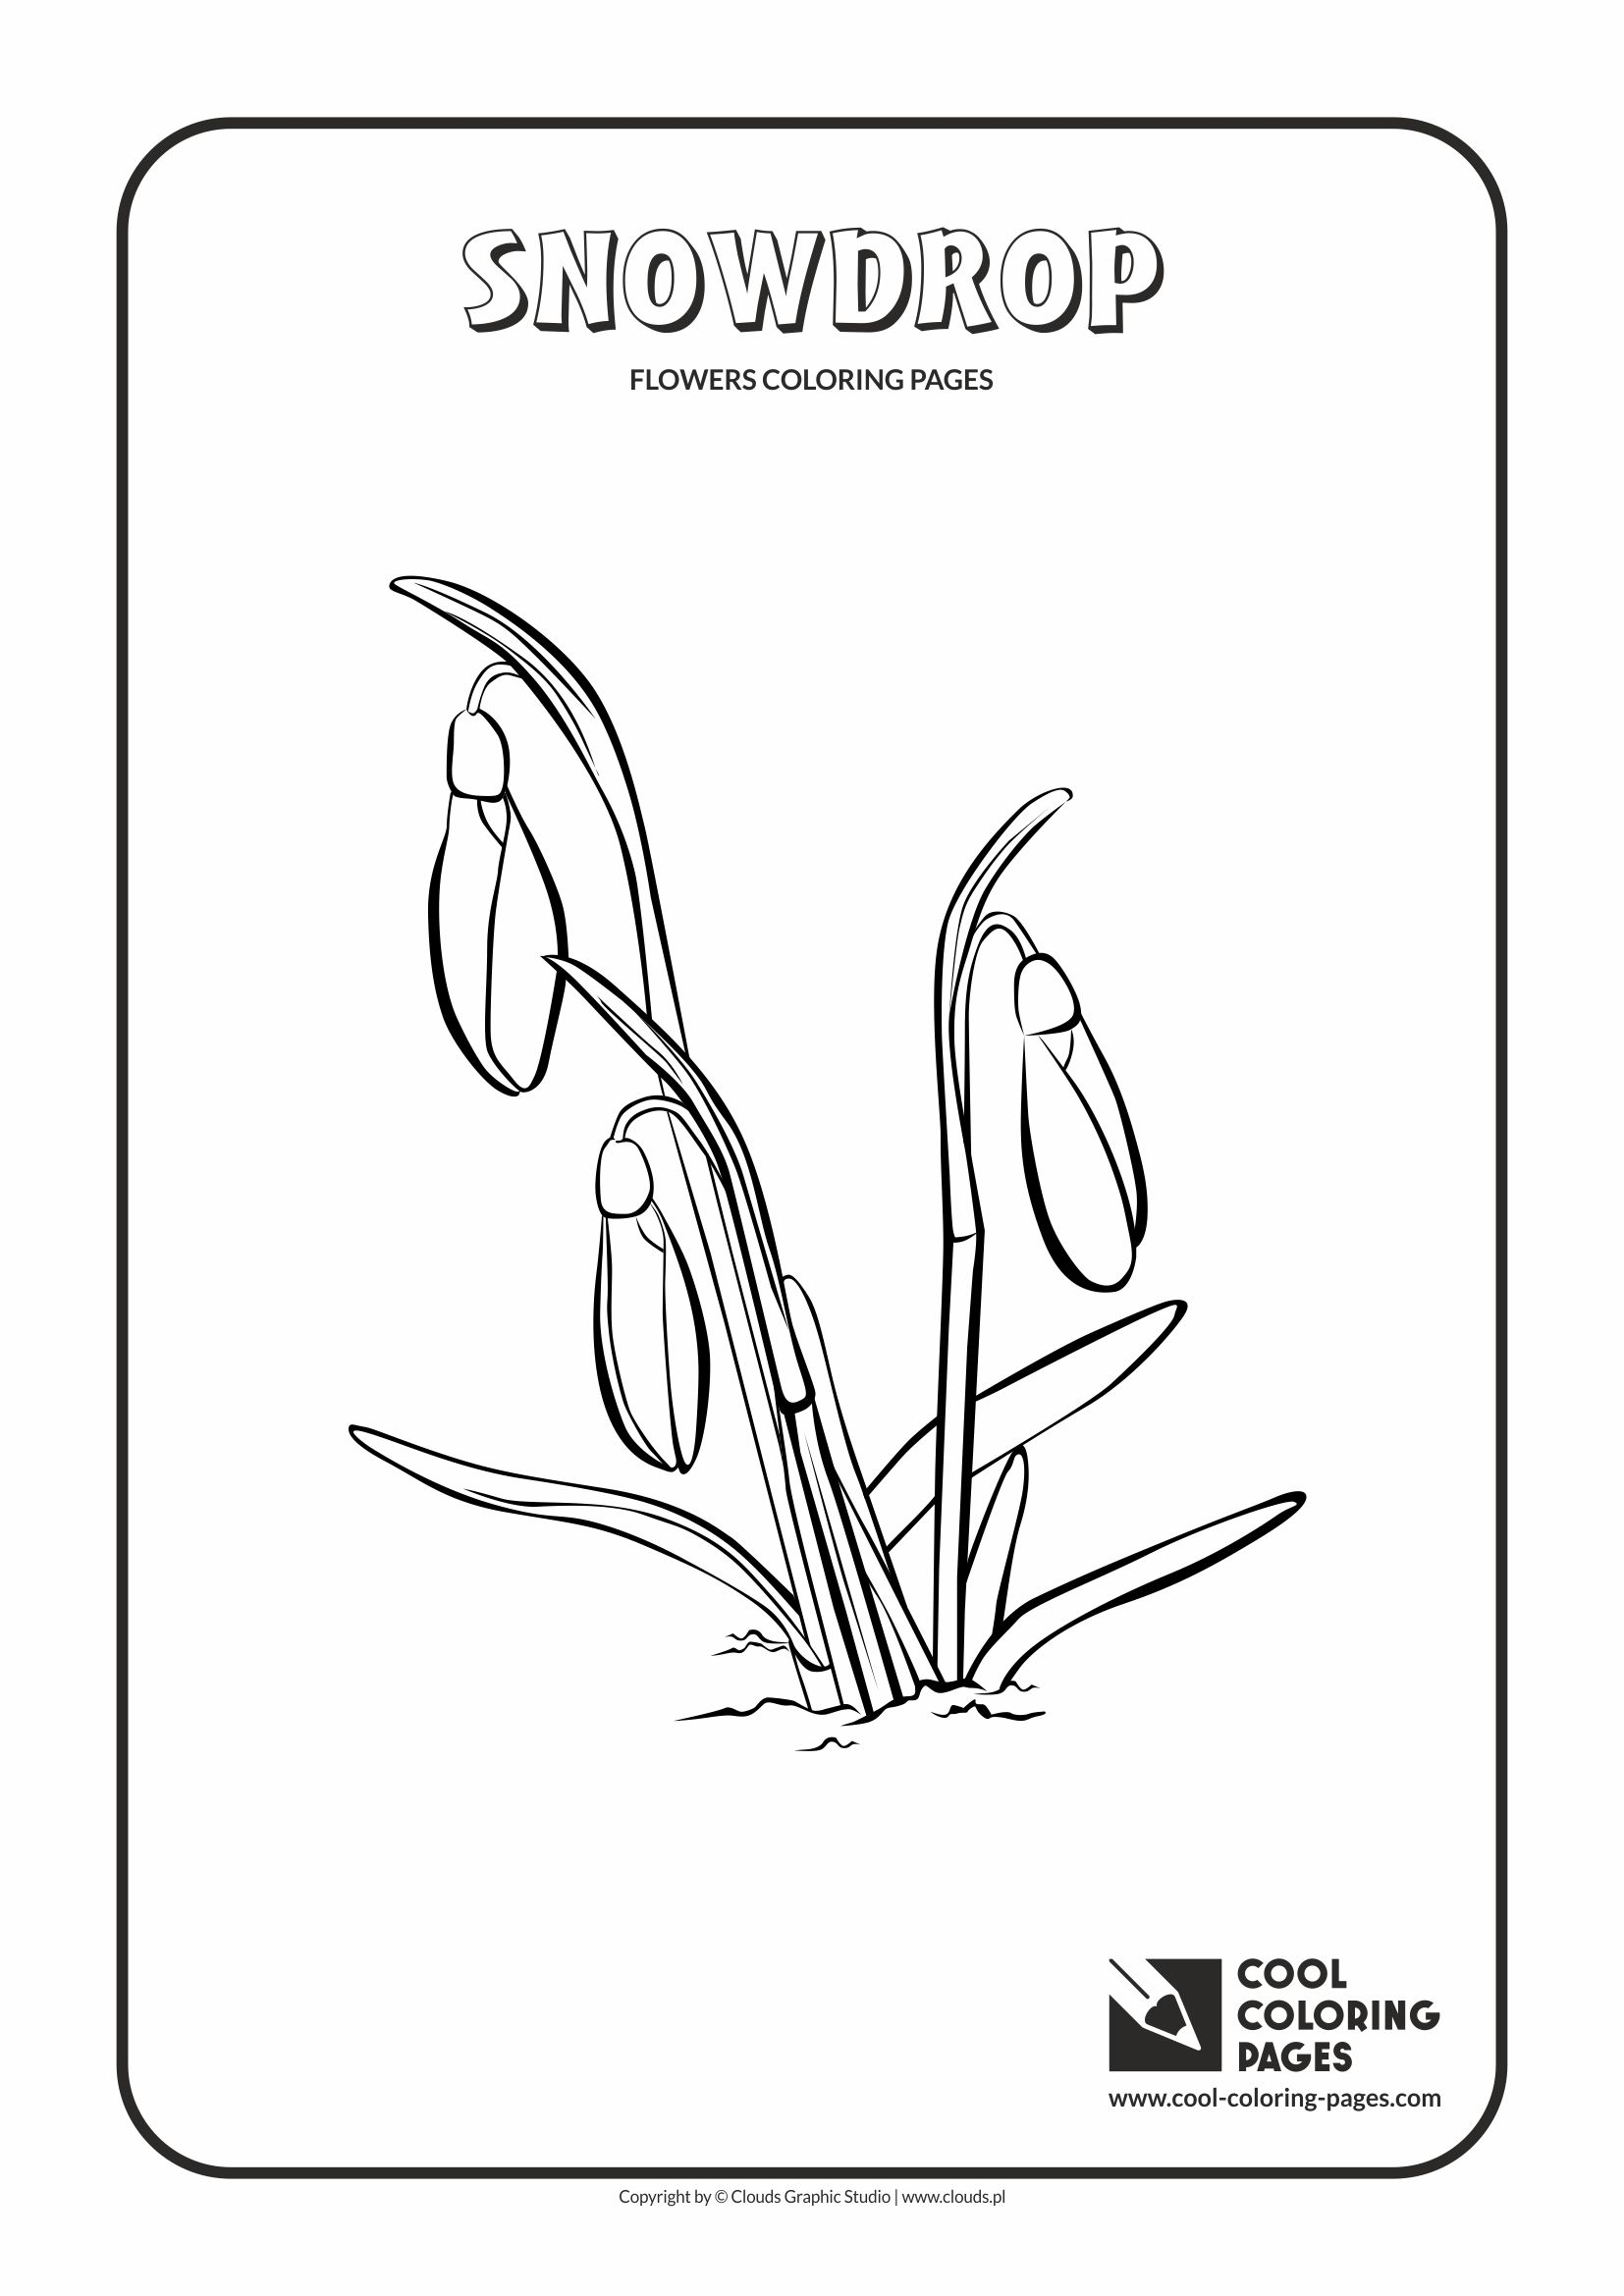 Cool Coloring Pages - Plants / Snowdrop / Coloring page with snowdrop